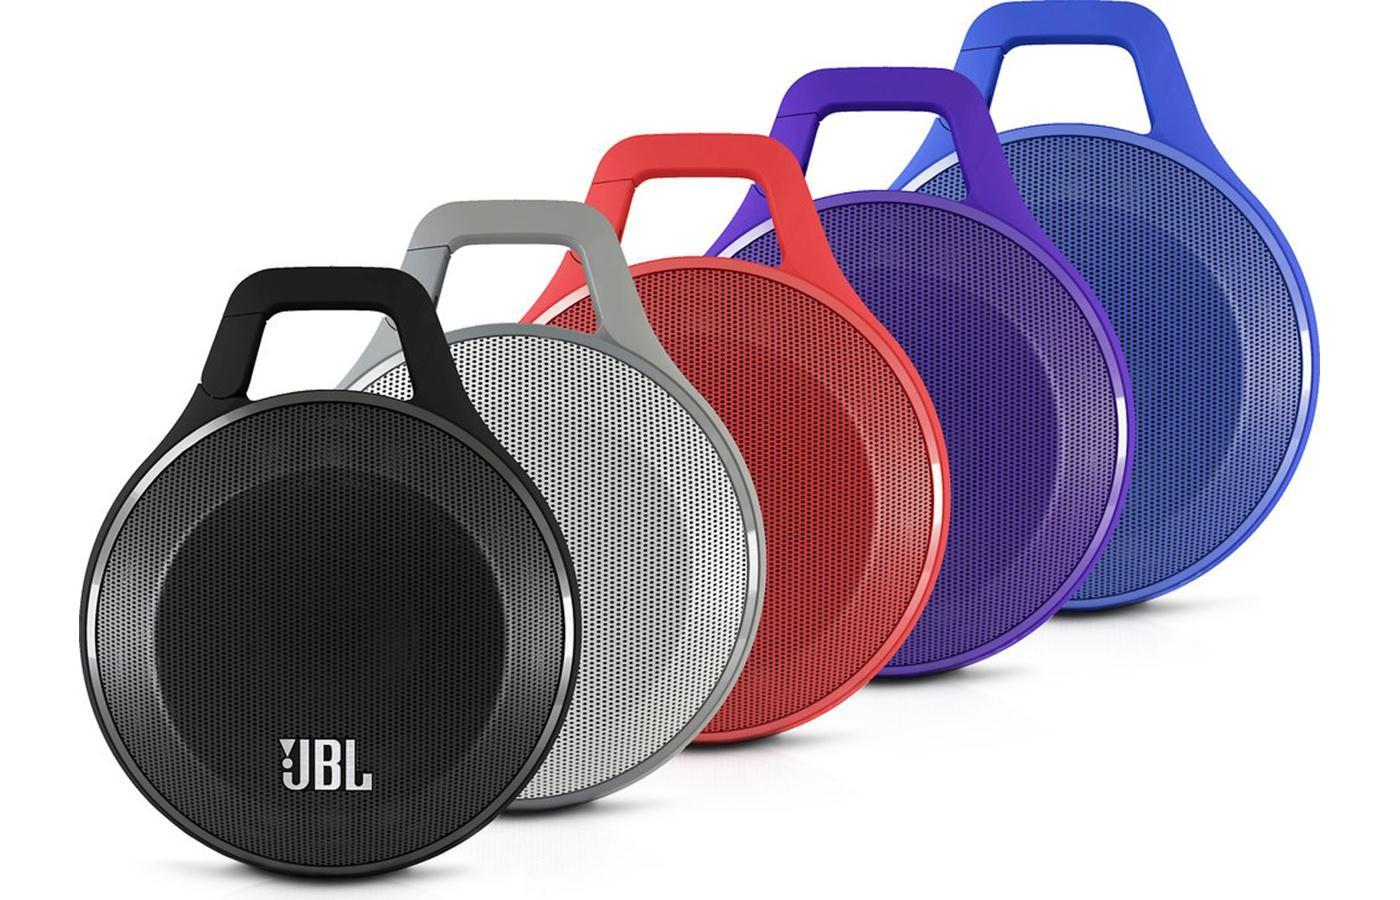 JBL Clip Portable Bluetooth Speaker, in 5 Colors